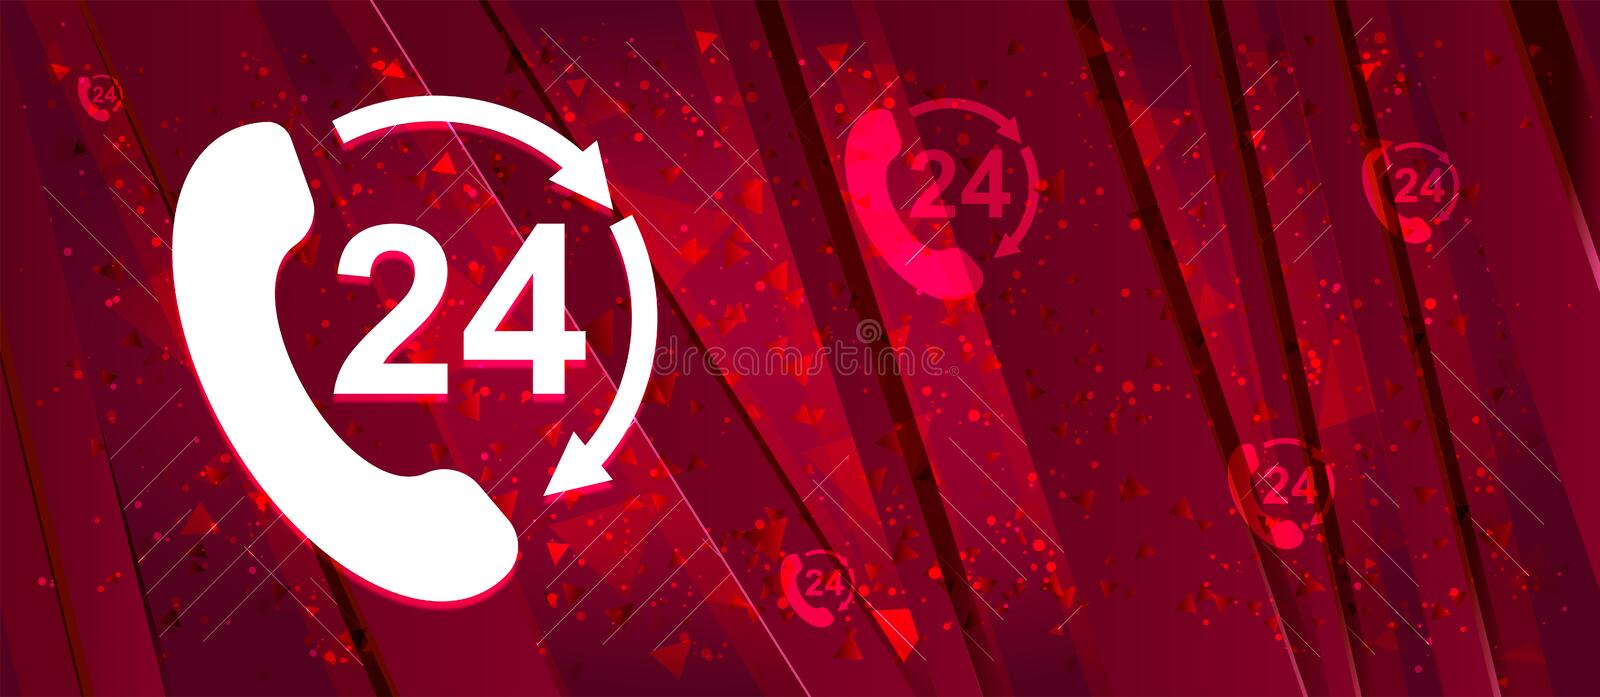 24 hours open phone rotate arrow icon Abstract design bright red banner background. 24 hours open phone rotate arrow icon isolated on Abstract design bright red royalty free illustration